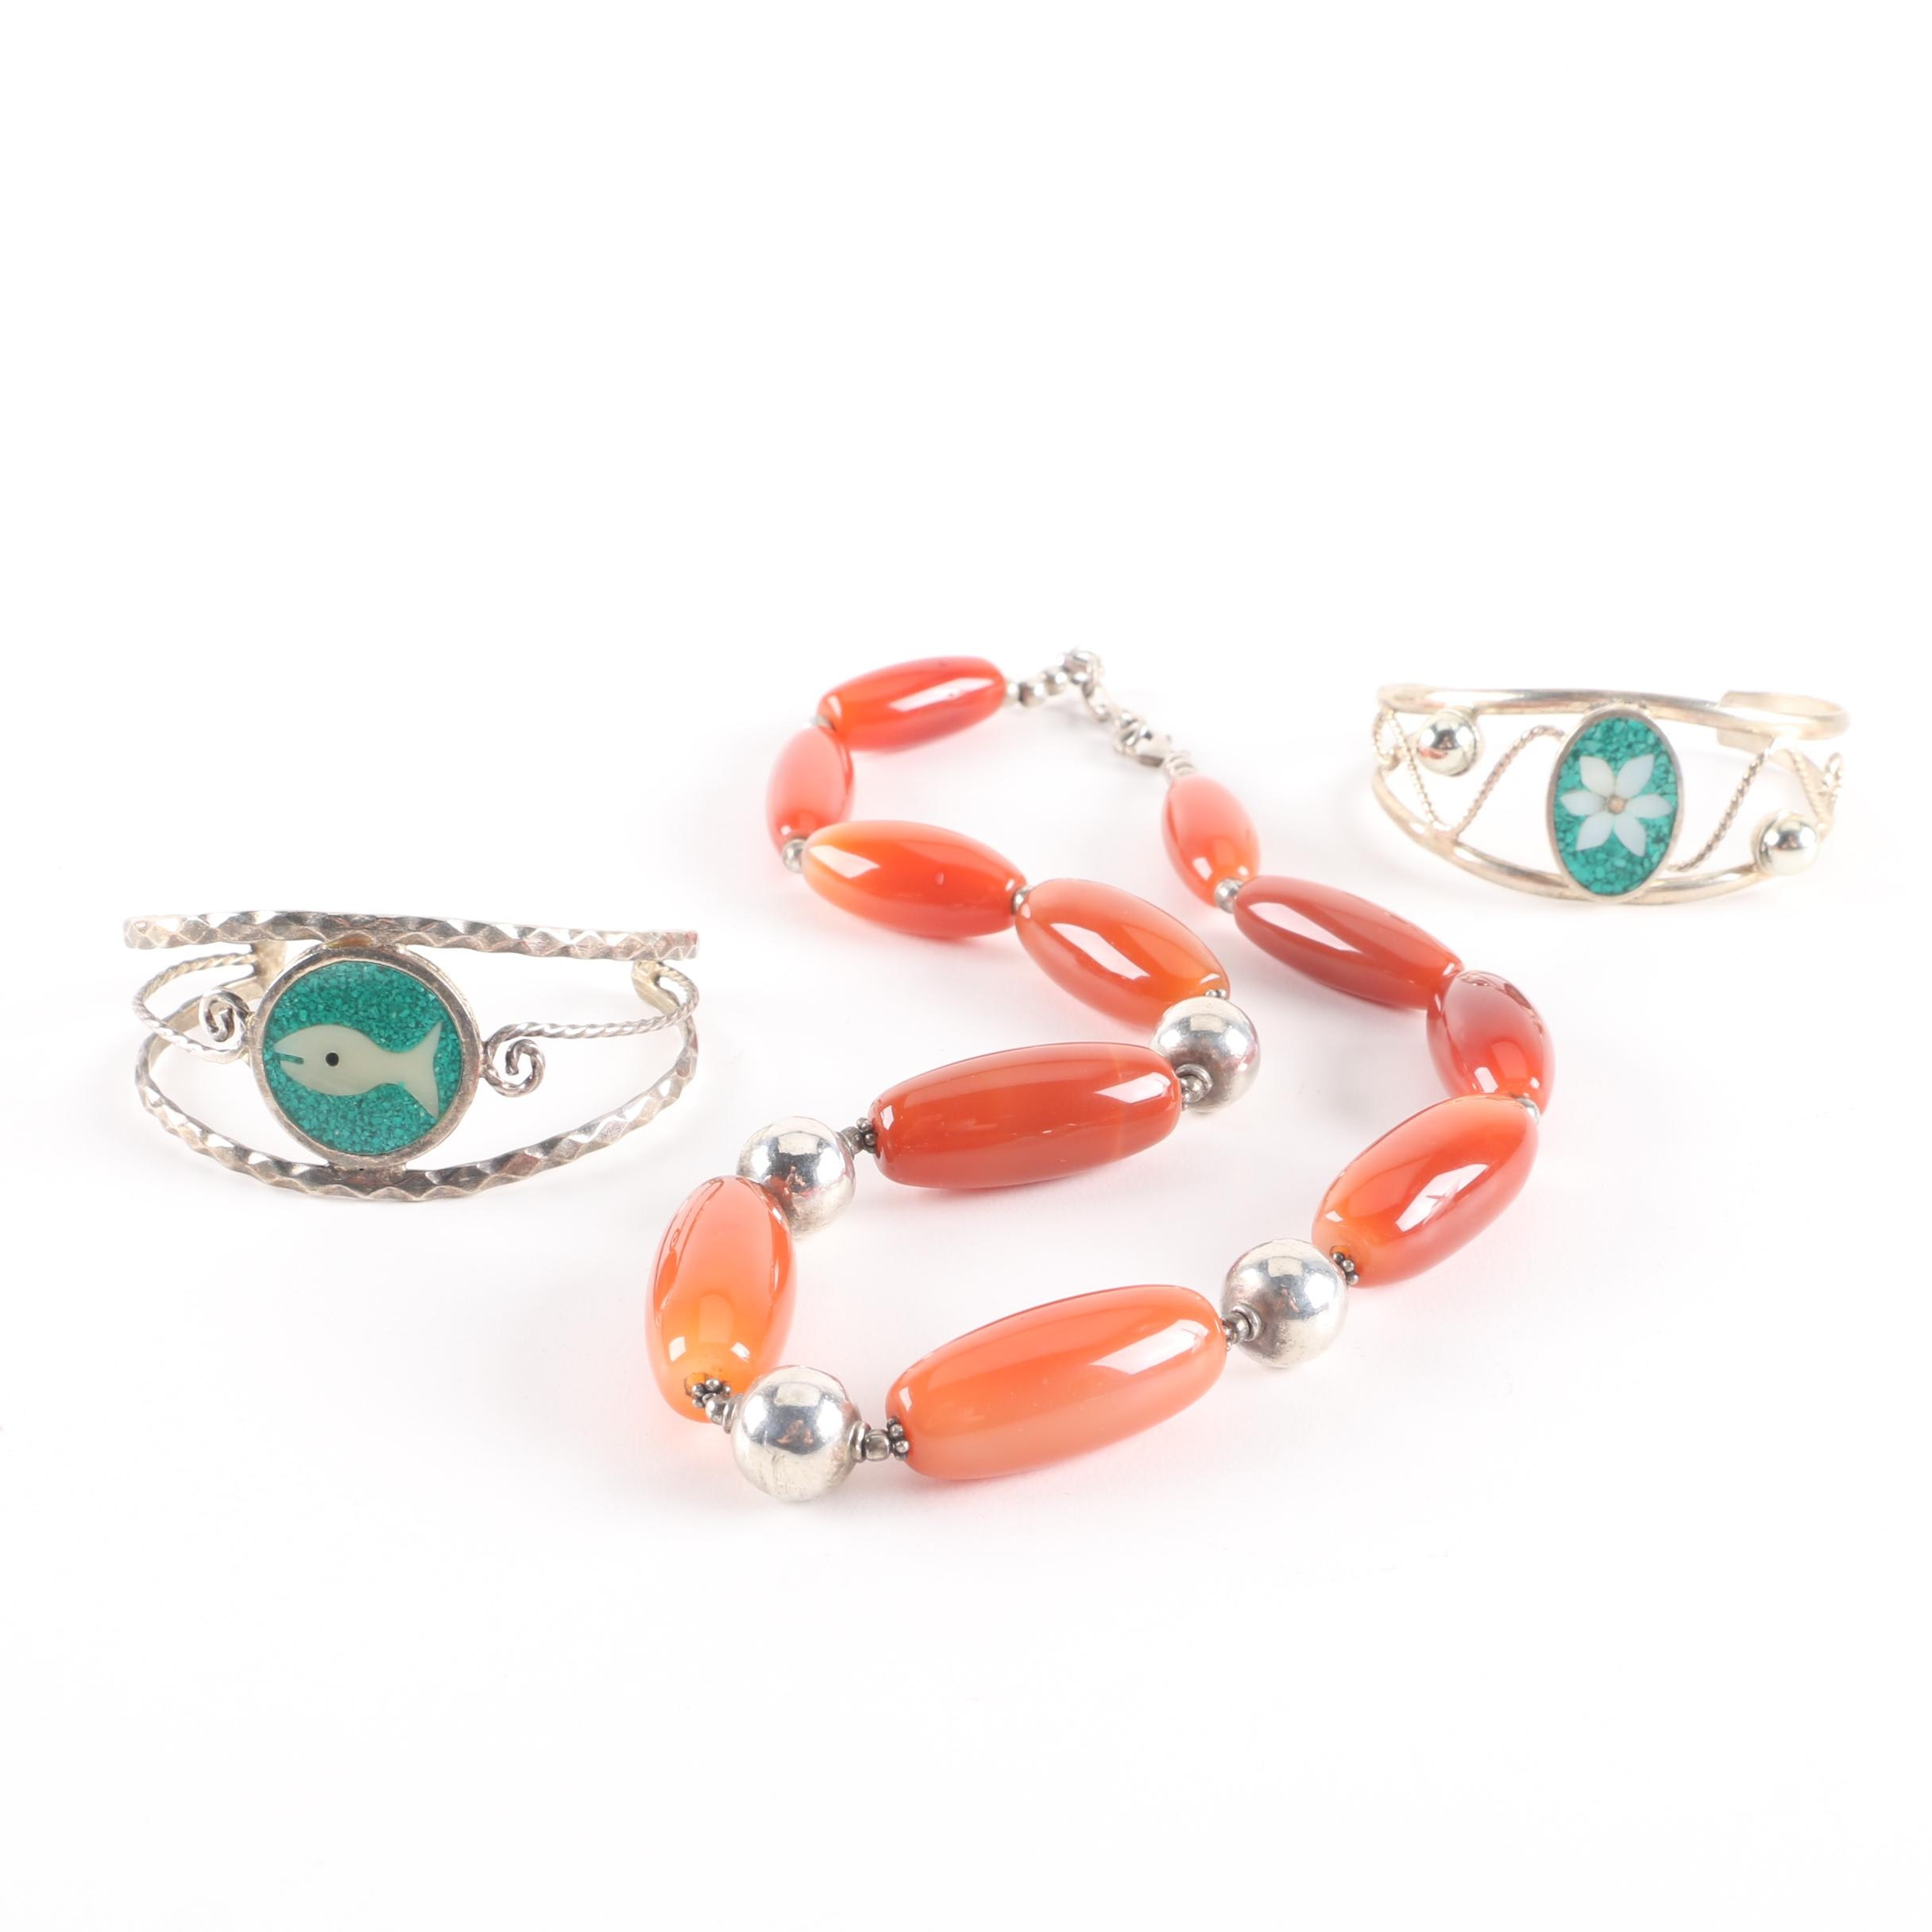 Assorted Gemstone Jewelry Including Mother Of Pearl and Sterling Silver